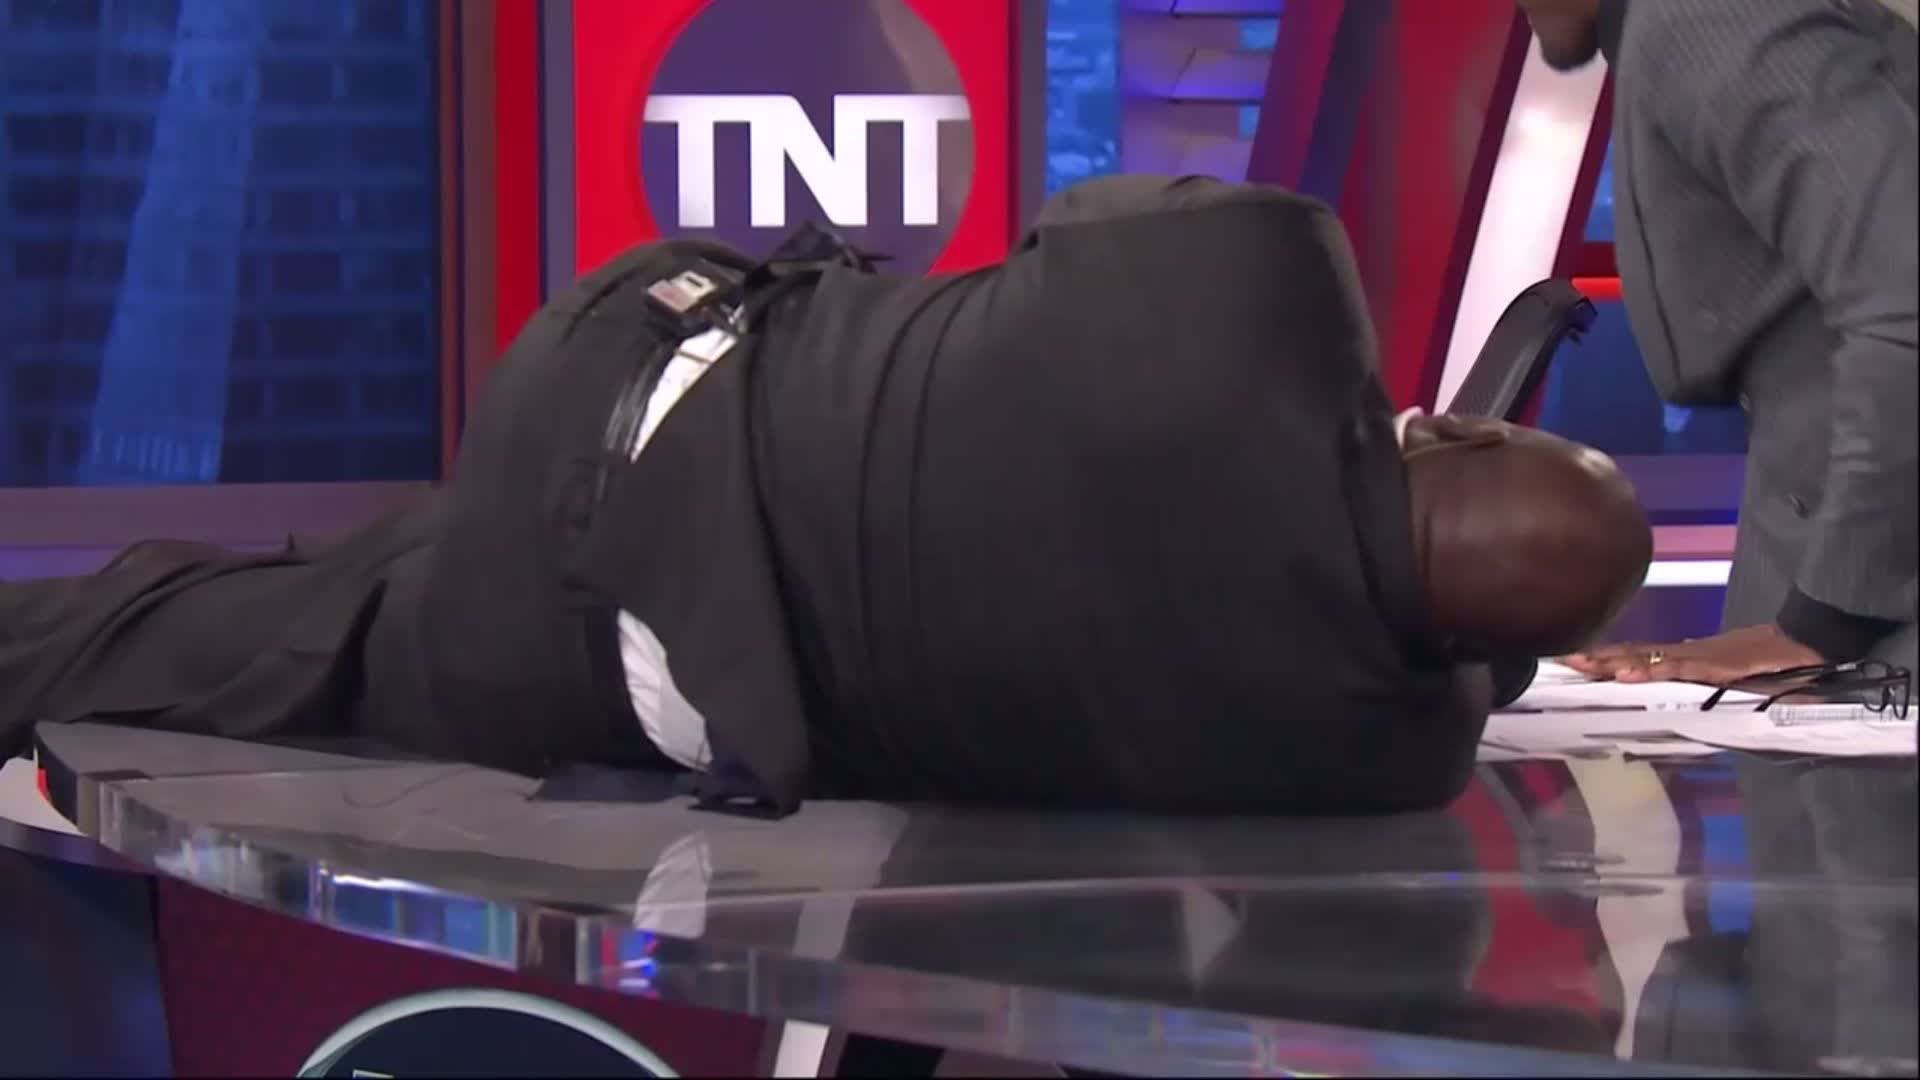 Apparently @SHAQ does his own stunts... ������  #PlayersOnly https://t.co/AN4GcSRYCK